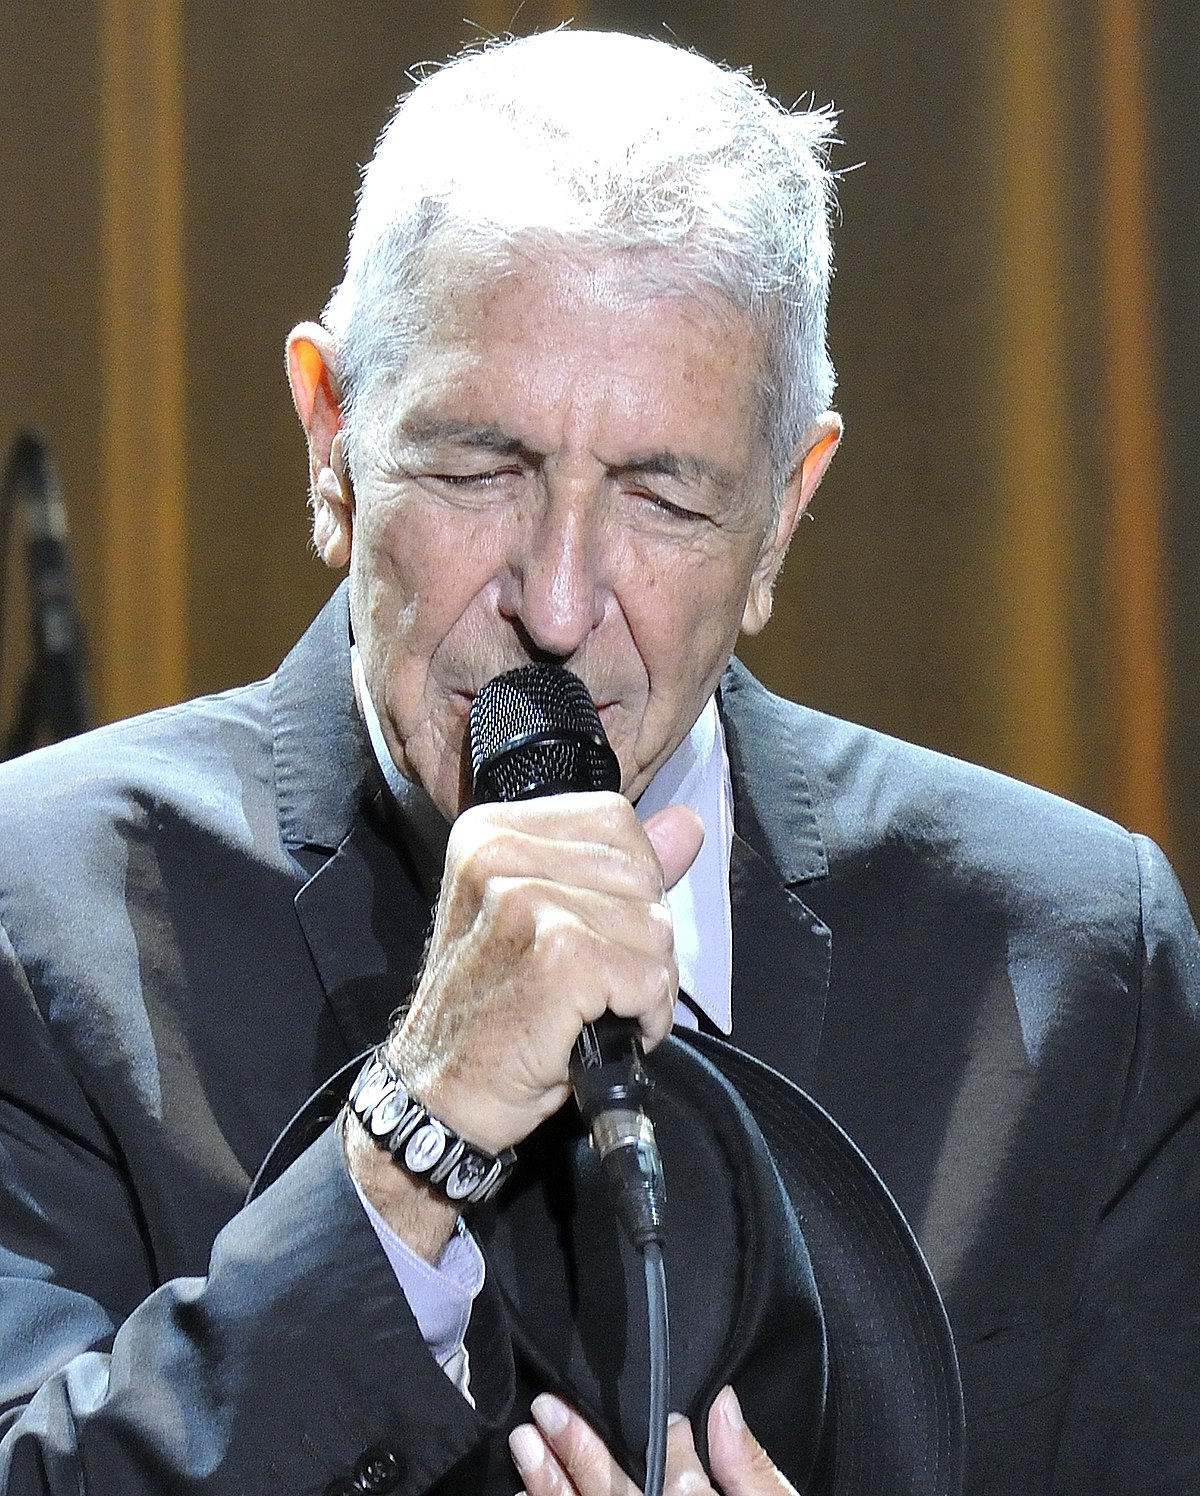 Leonard Cohen - Simple English Wikipedia, the free ...